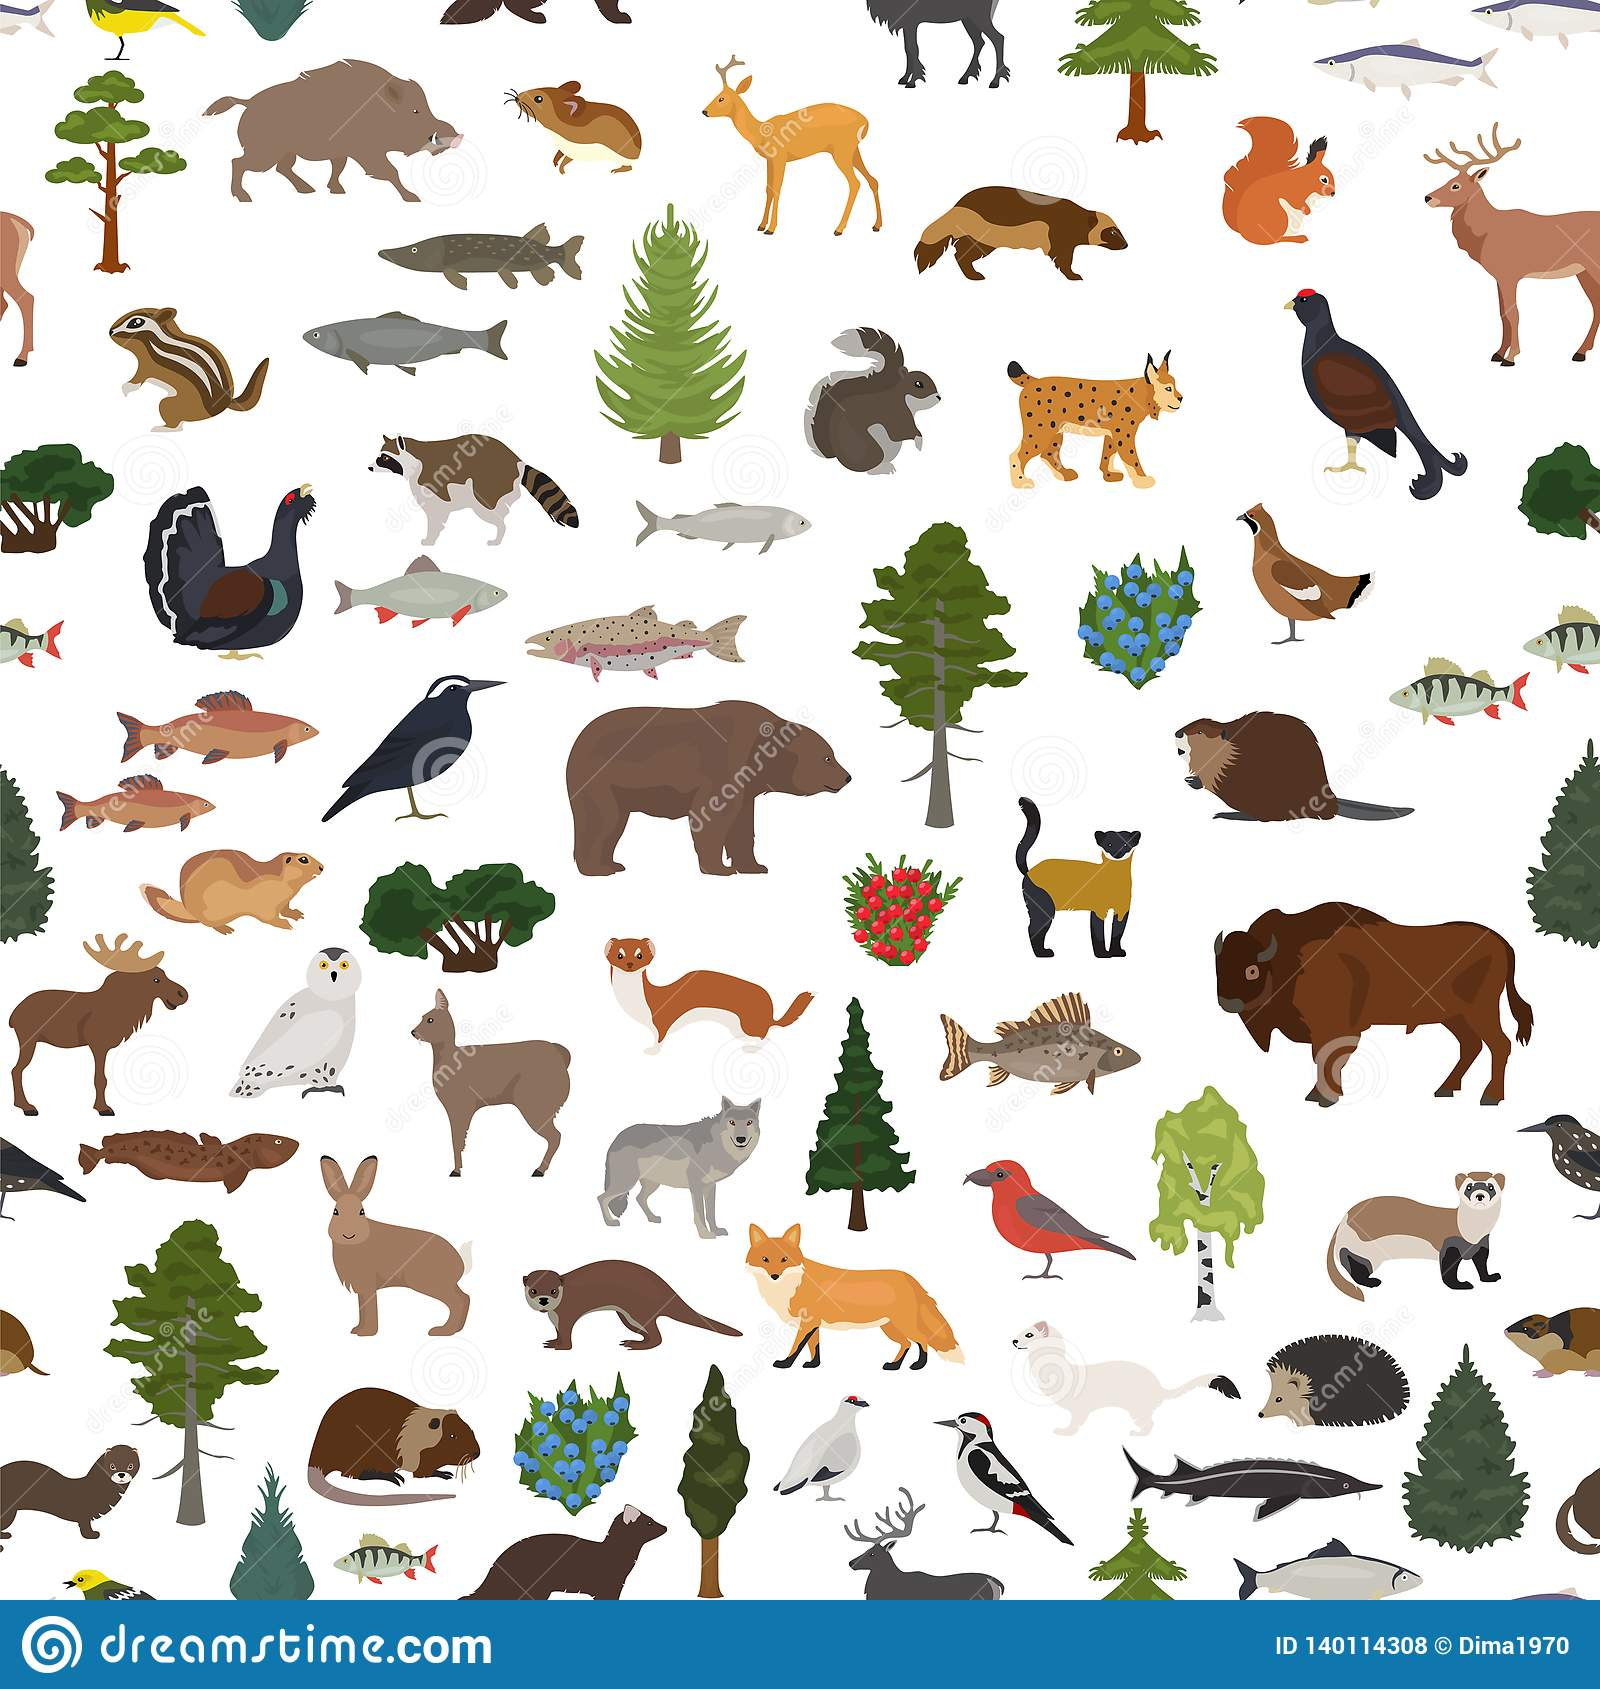 Species adapted to cold respire less (use. Taiga Biome Boreal Snow Forest Seamless Pattern Terrestrial Ecosystem World Map Animals Birds Fish And Plants Design Stock Vector Illustration Of Animal Cottonwood 140114308